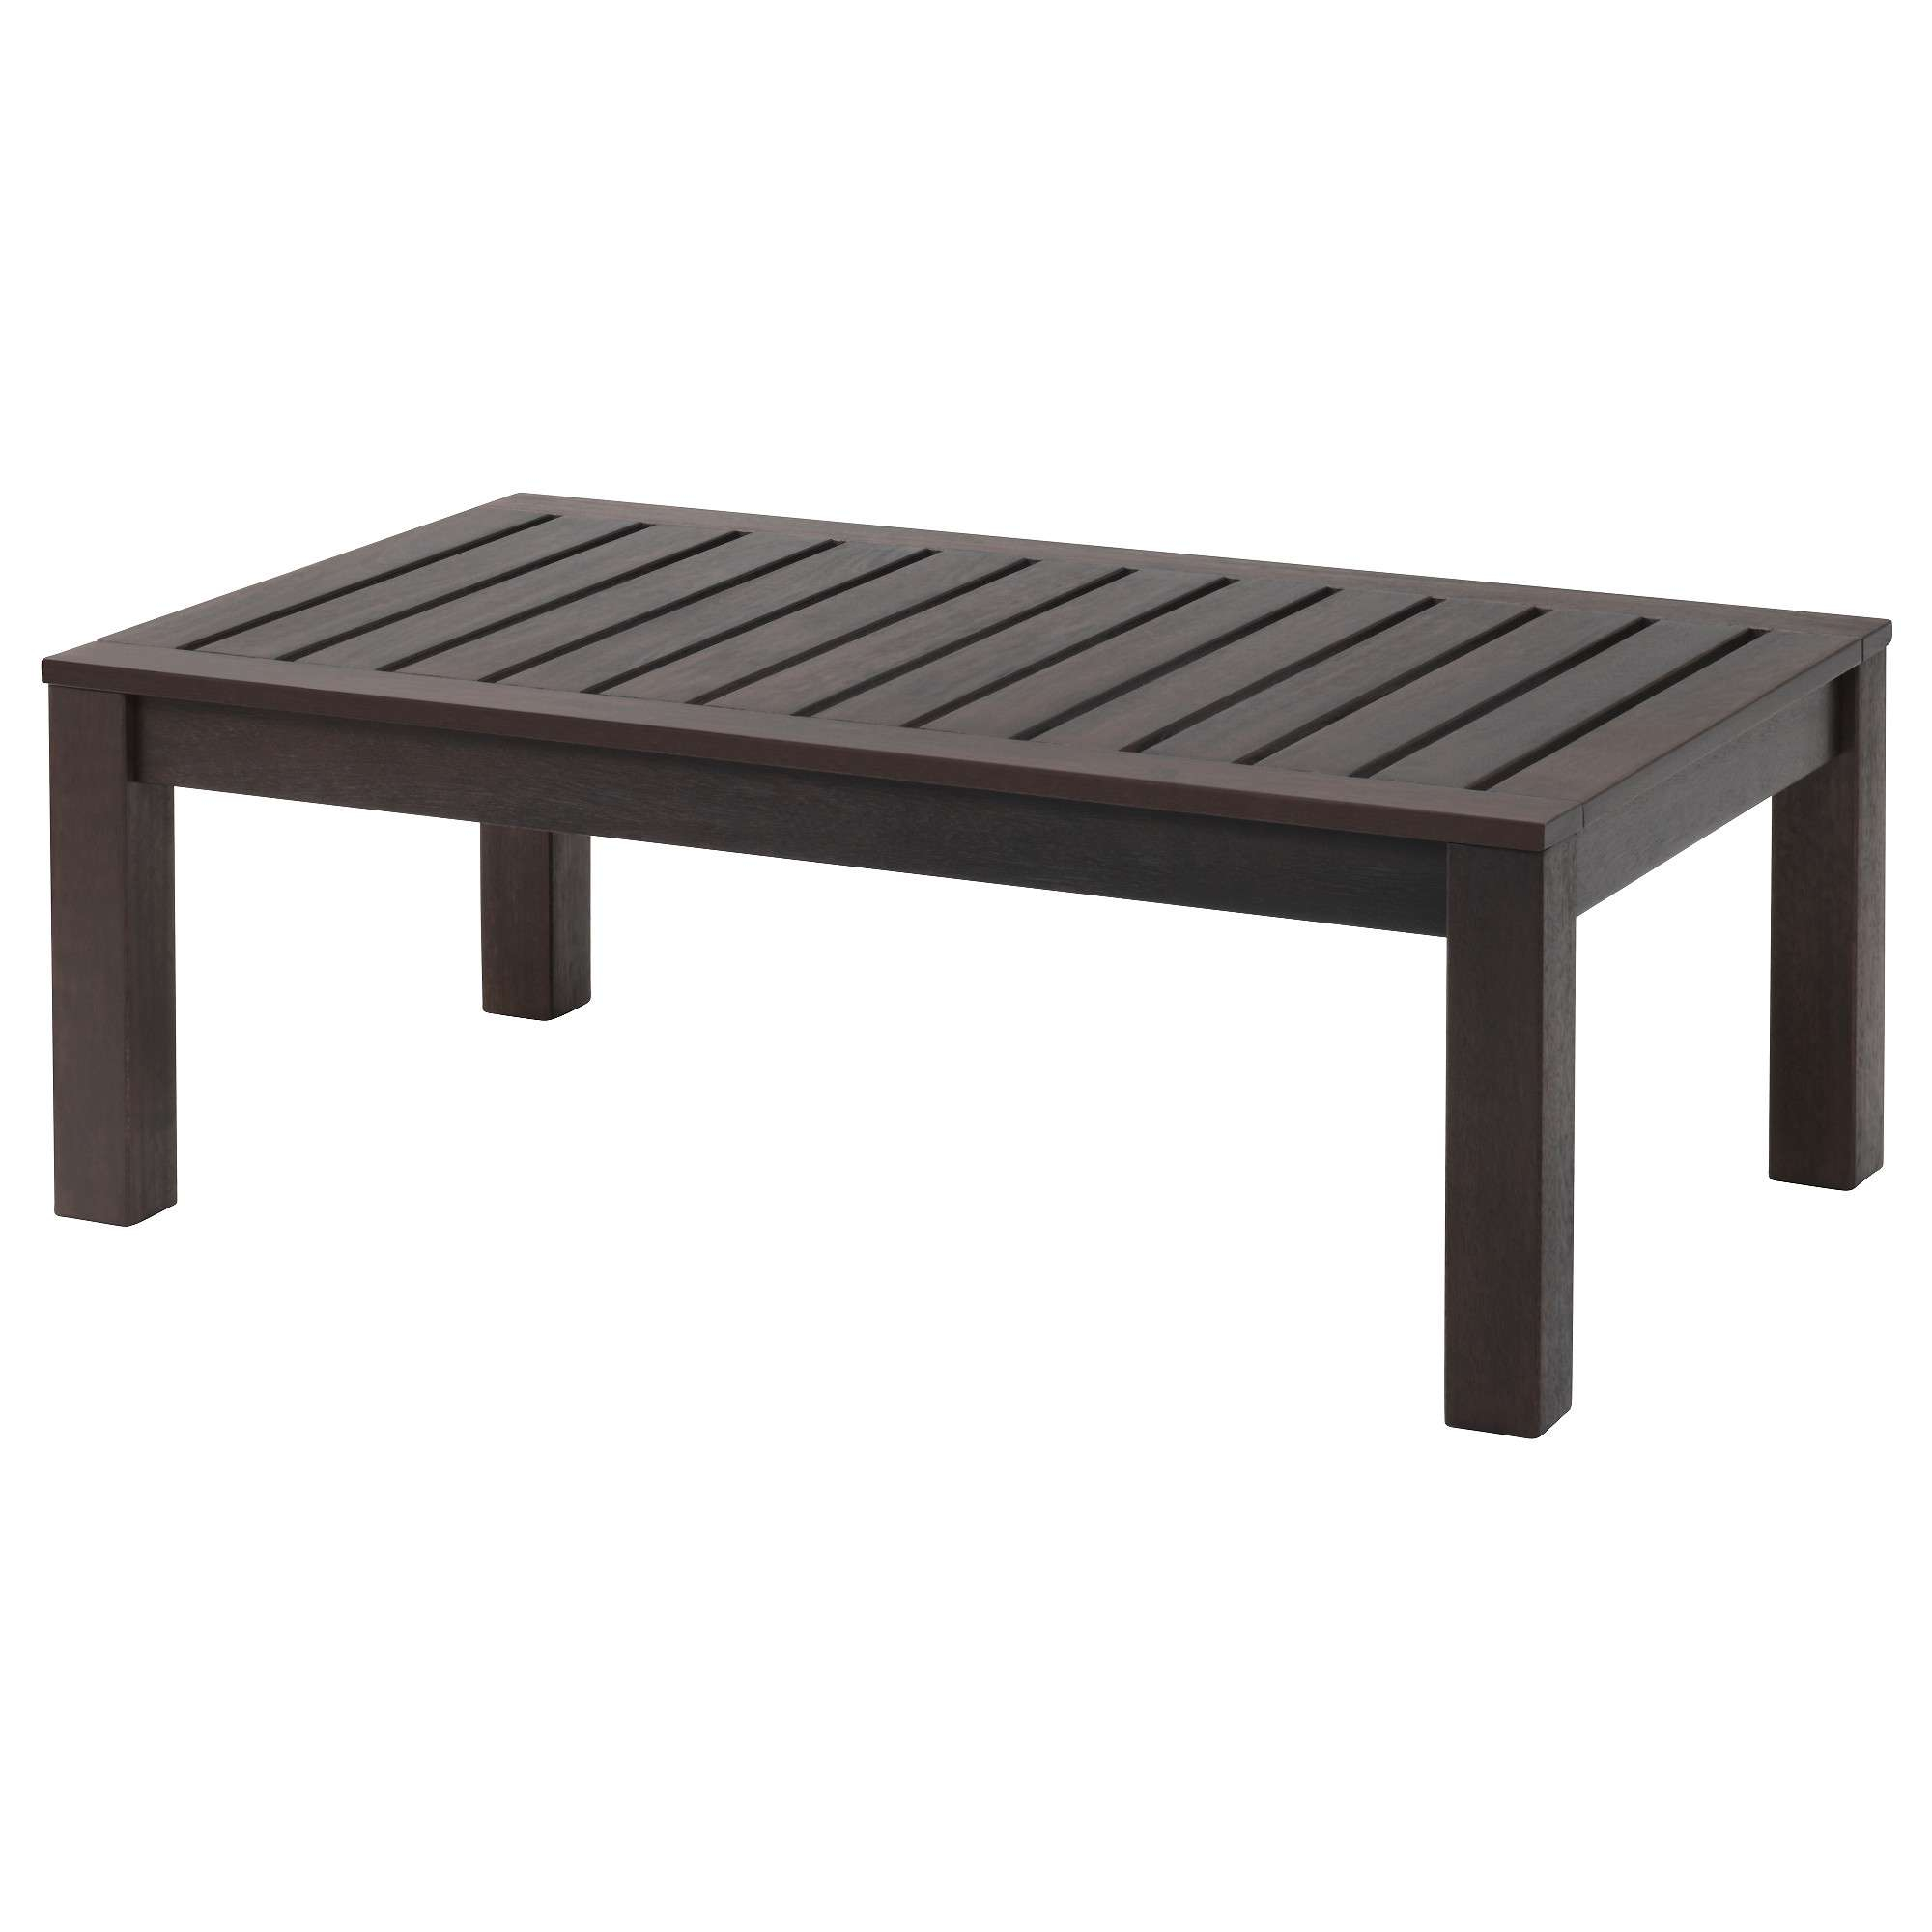 coffee table with folding sides tables ideas rowan small outdoor concrete round side collection natural wood accent white and gold console baroque storage cabinet drawers modern